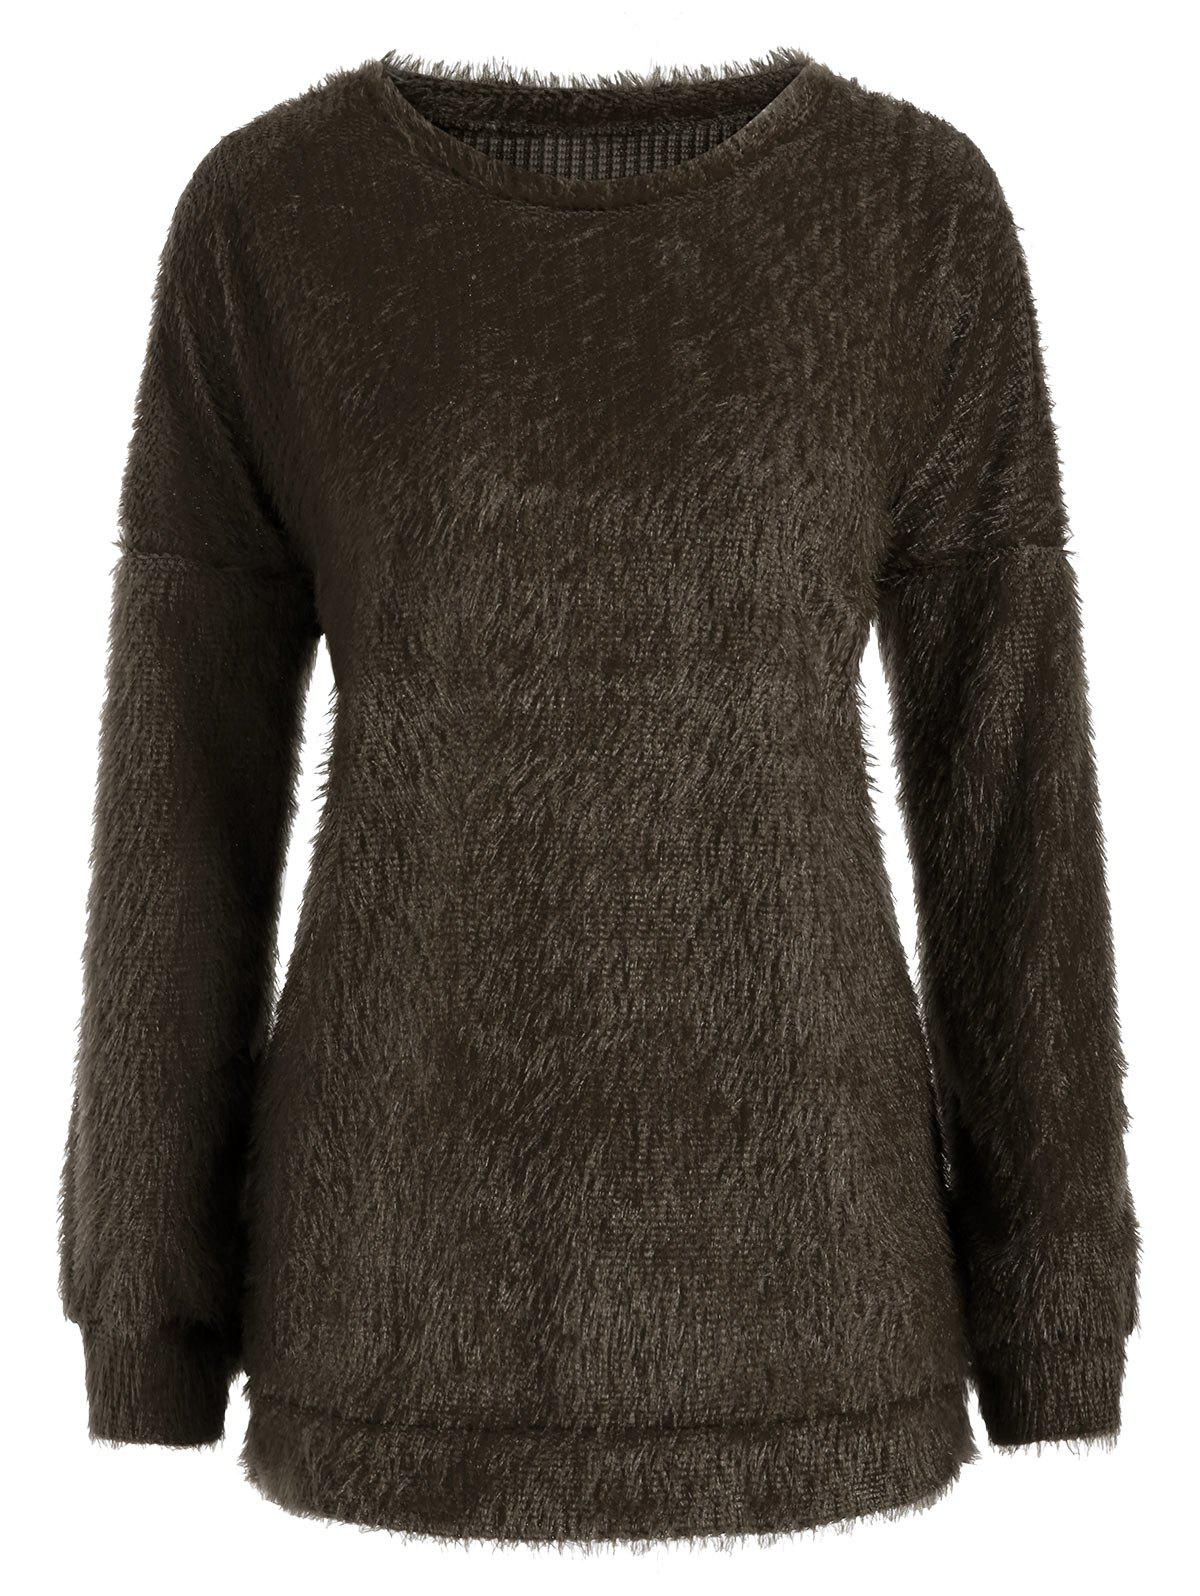 Fuzzy Knit Drop Shoulder Boyfriend Tunic Sweater - BROWN S